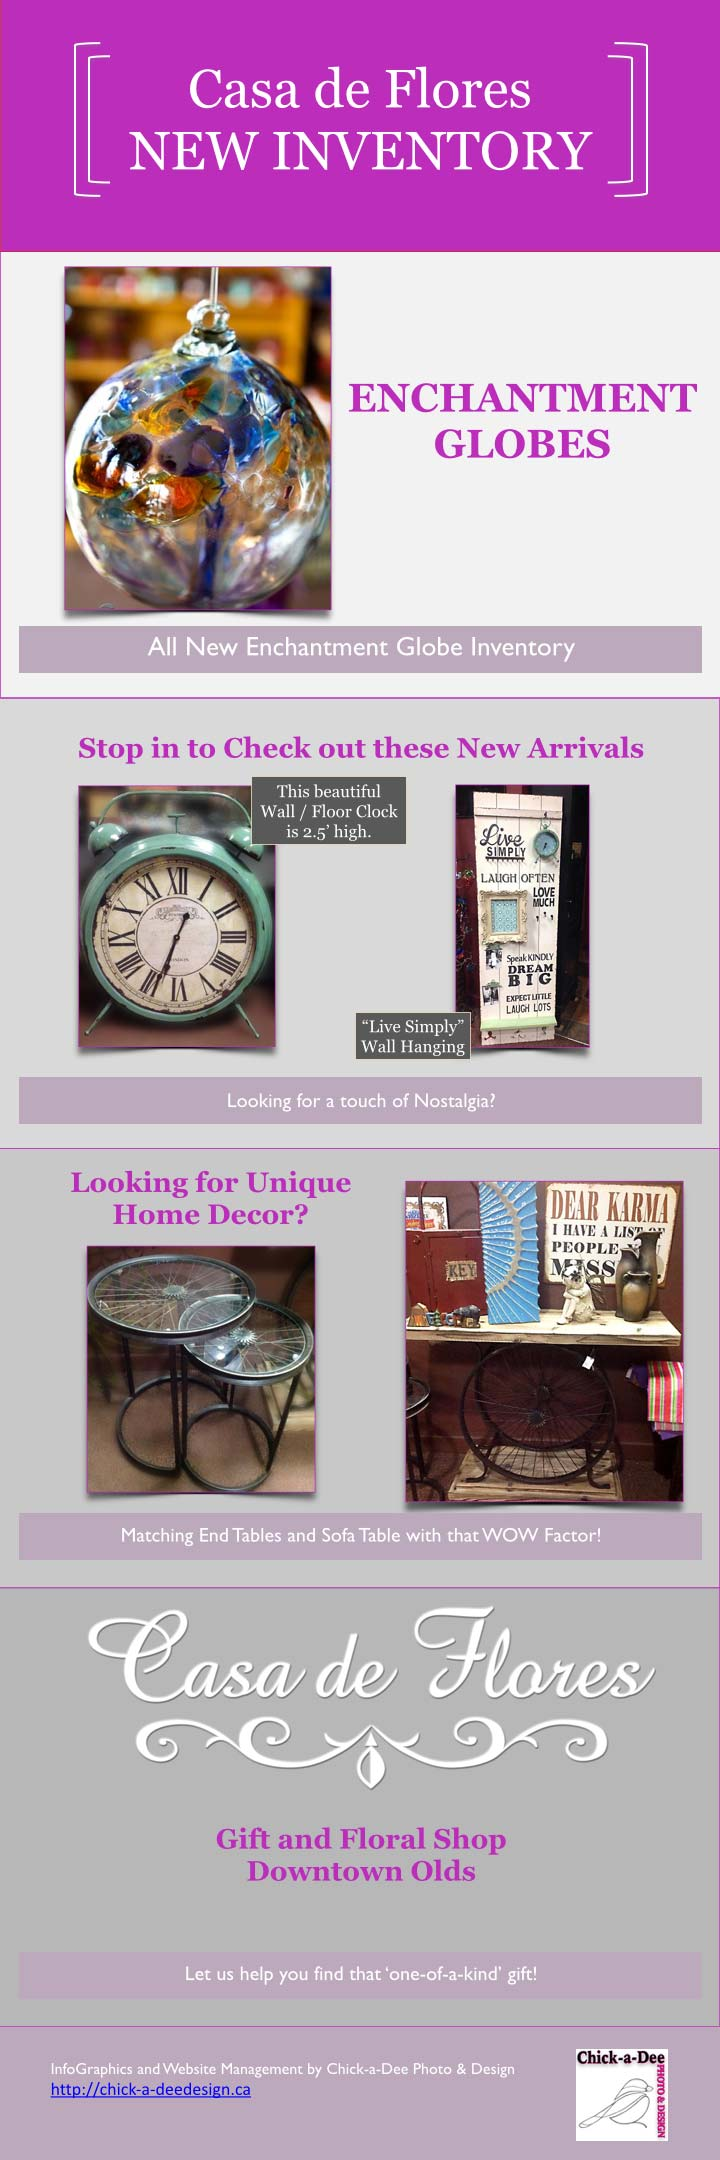 Gazing Garden Globe, Ornamental Floor clock, Bicycle Wheel end tables and sofa table, wall hangings